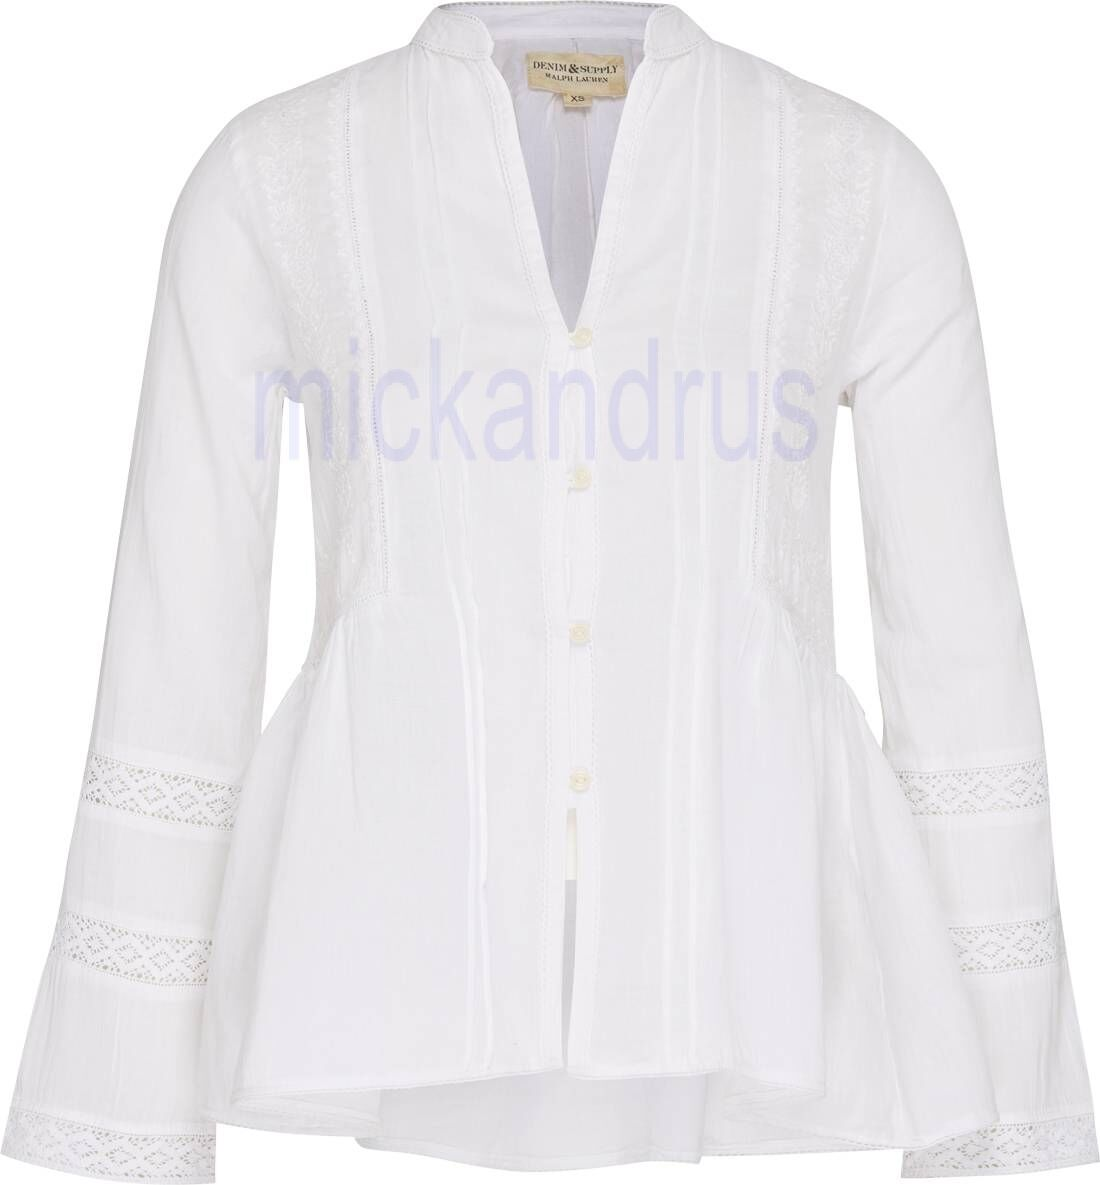 NWT Denim&Supply by Ralph Lauren White Cotton Embroidered Embellished Top Sz S